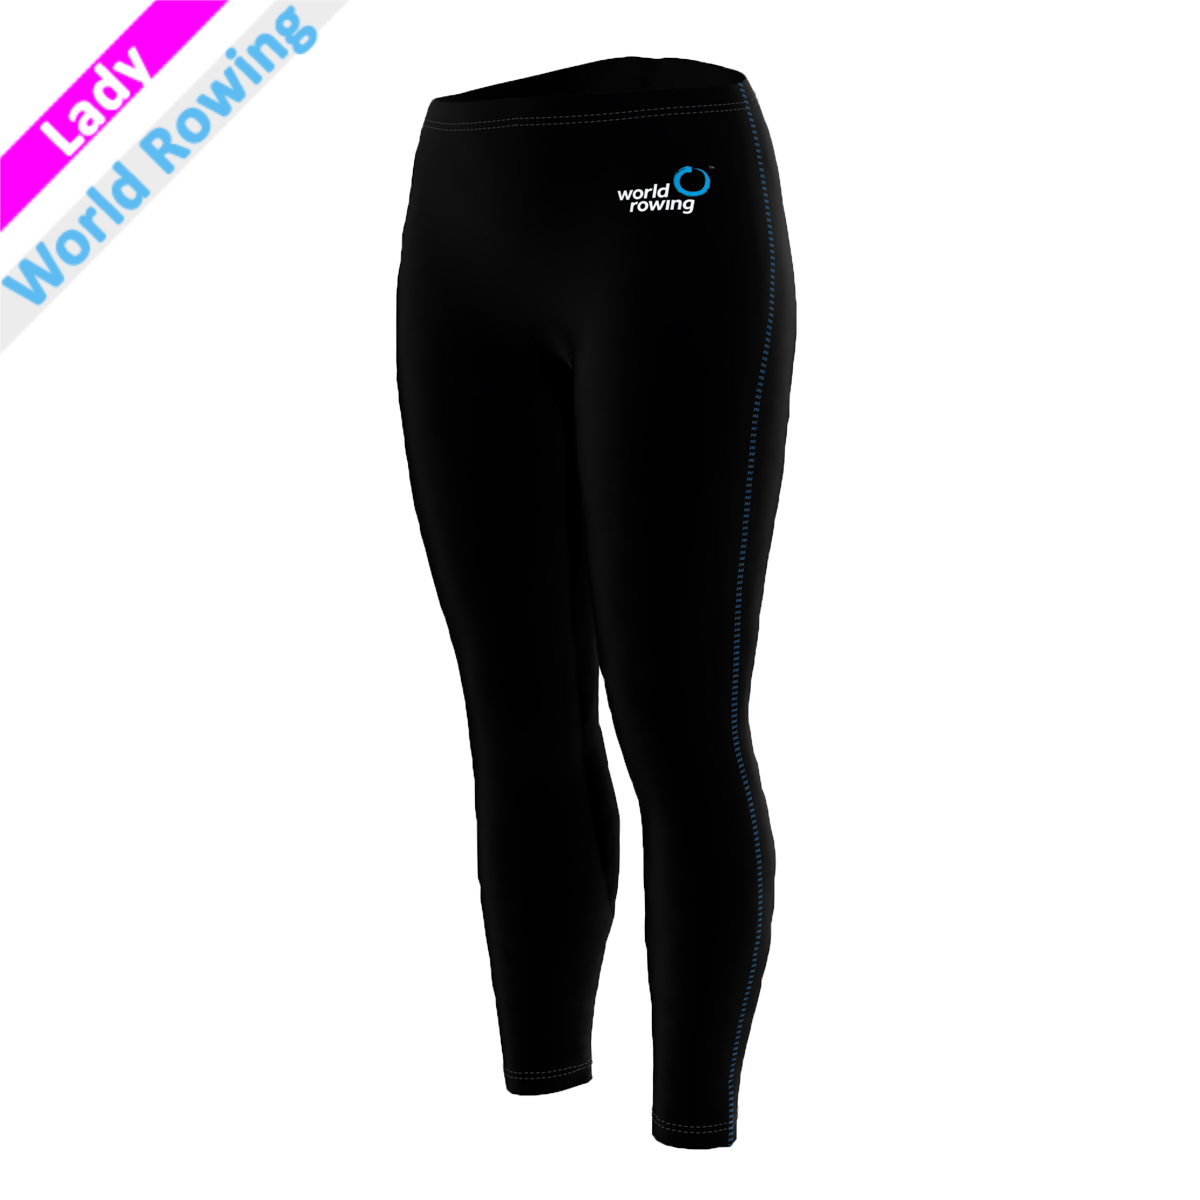 World Rowing Tights - schwarz F